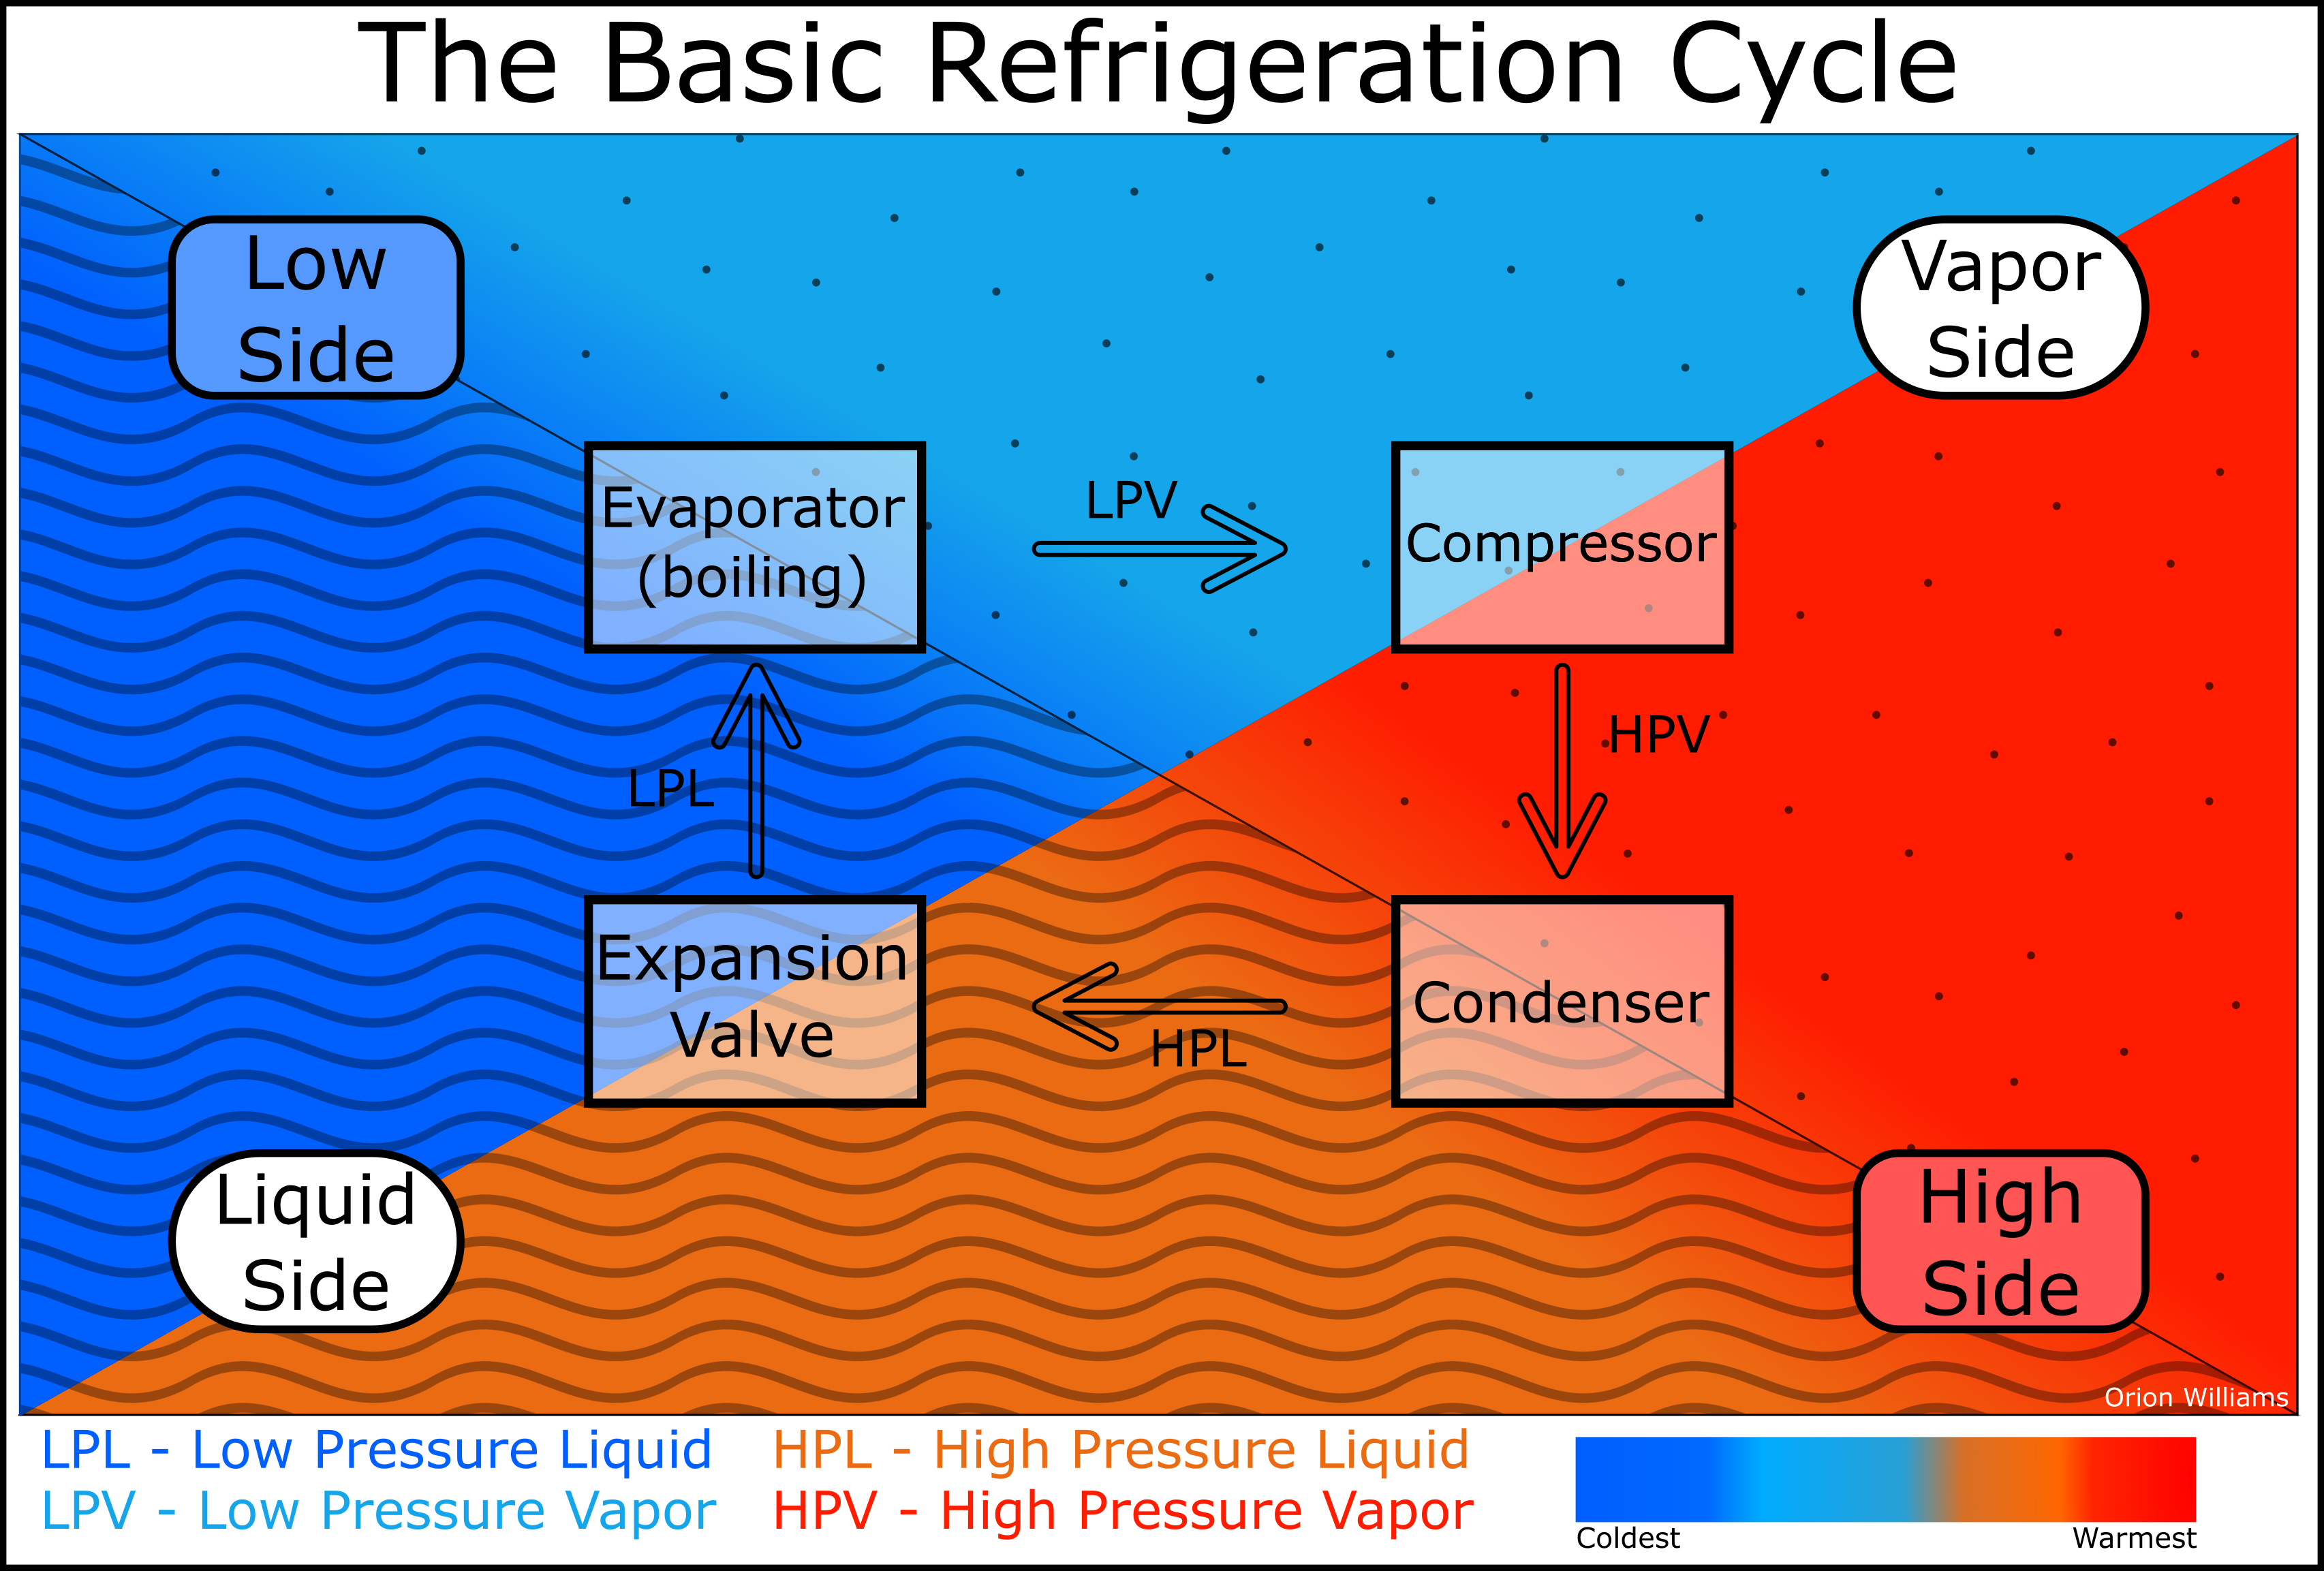 A block diagram of the basic refrigeration cycle